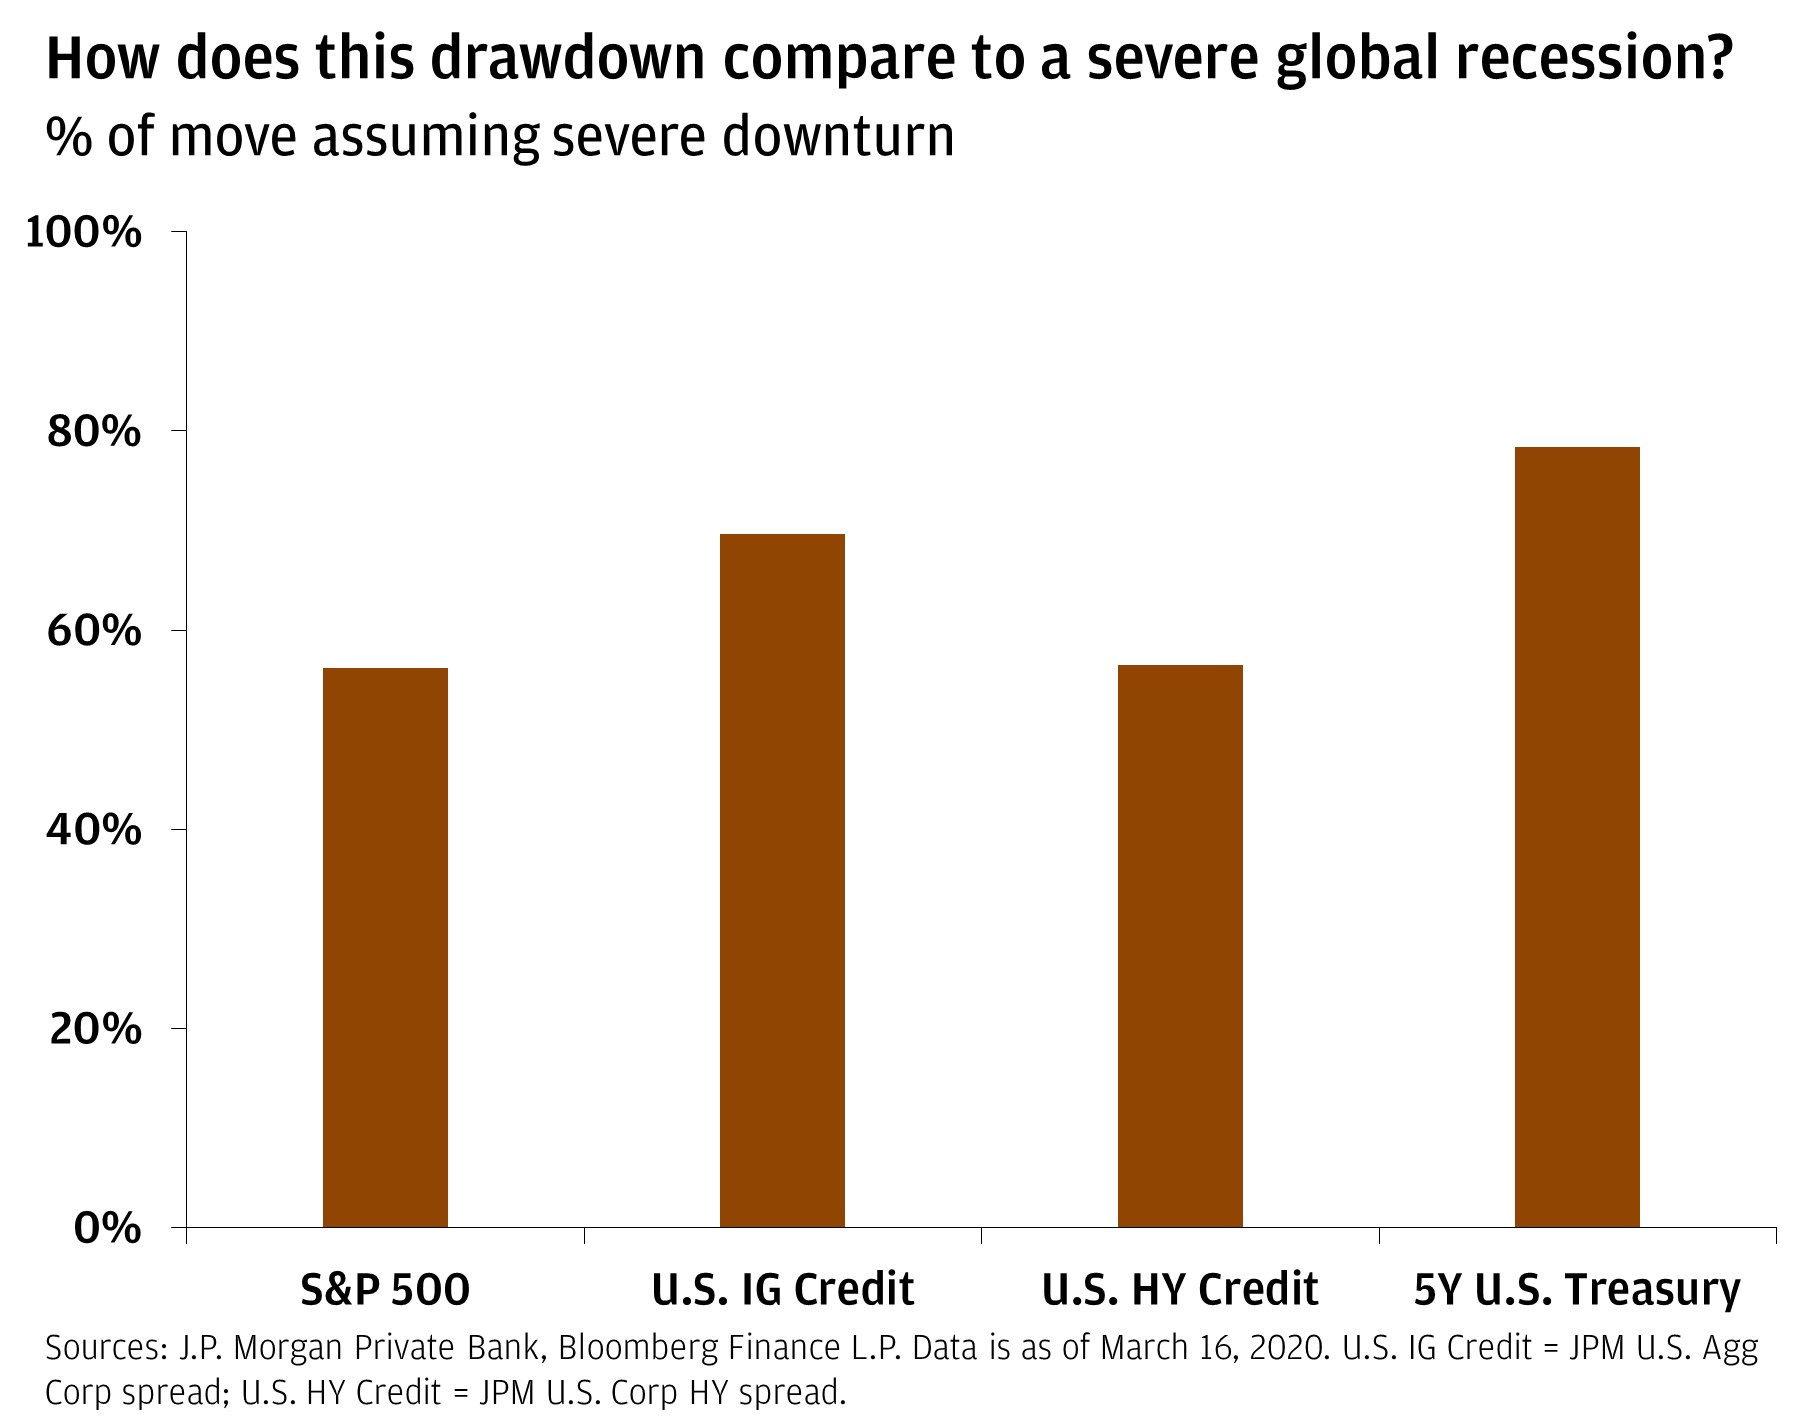 Bar chart comparing the percentage of move assuming severe downturn of the S&P 500, U.S. Investment Grade Credit, U.S. High Yield Credit and 5-Year U.S. Treasury. The chart shows that the 5-Year U.S. Treasury would see the largest downturn.